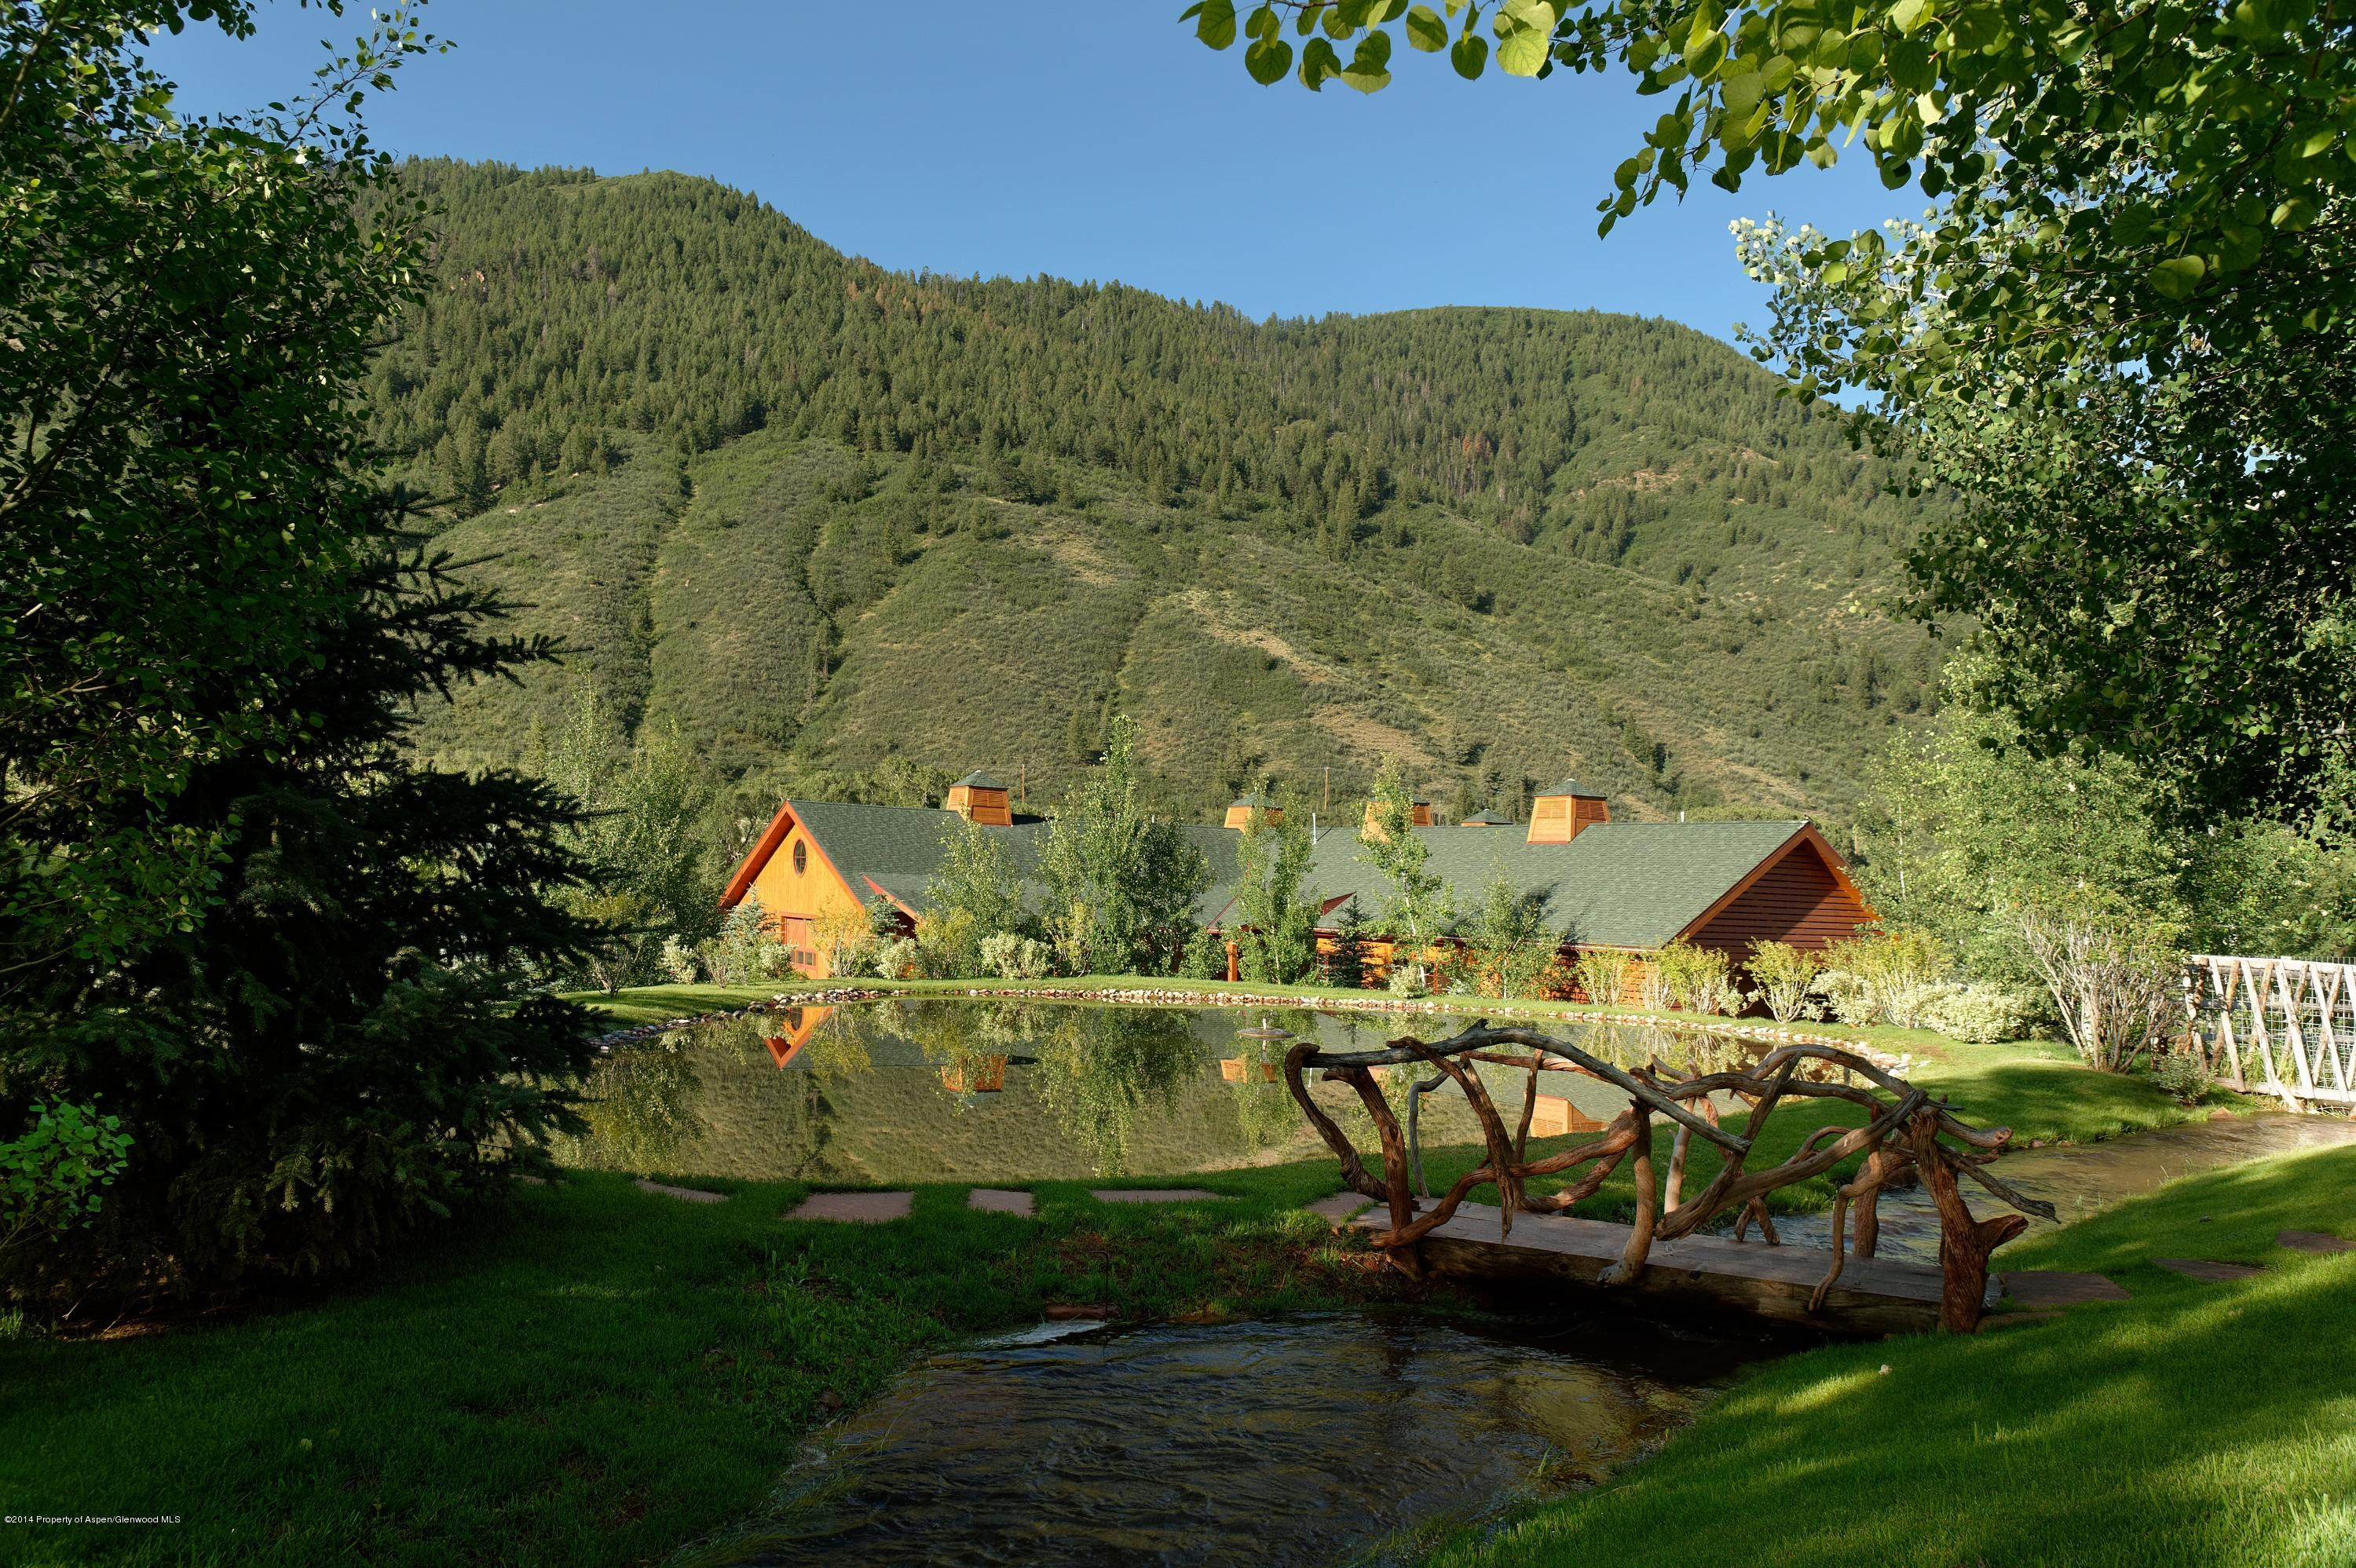 MLS# 135595 - 59 - 50 E River Ranch Road, Snowmass, CO 81654